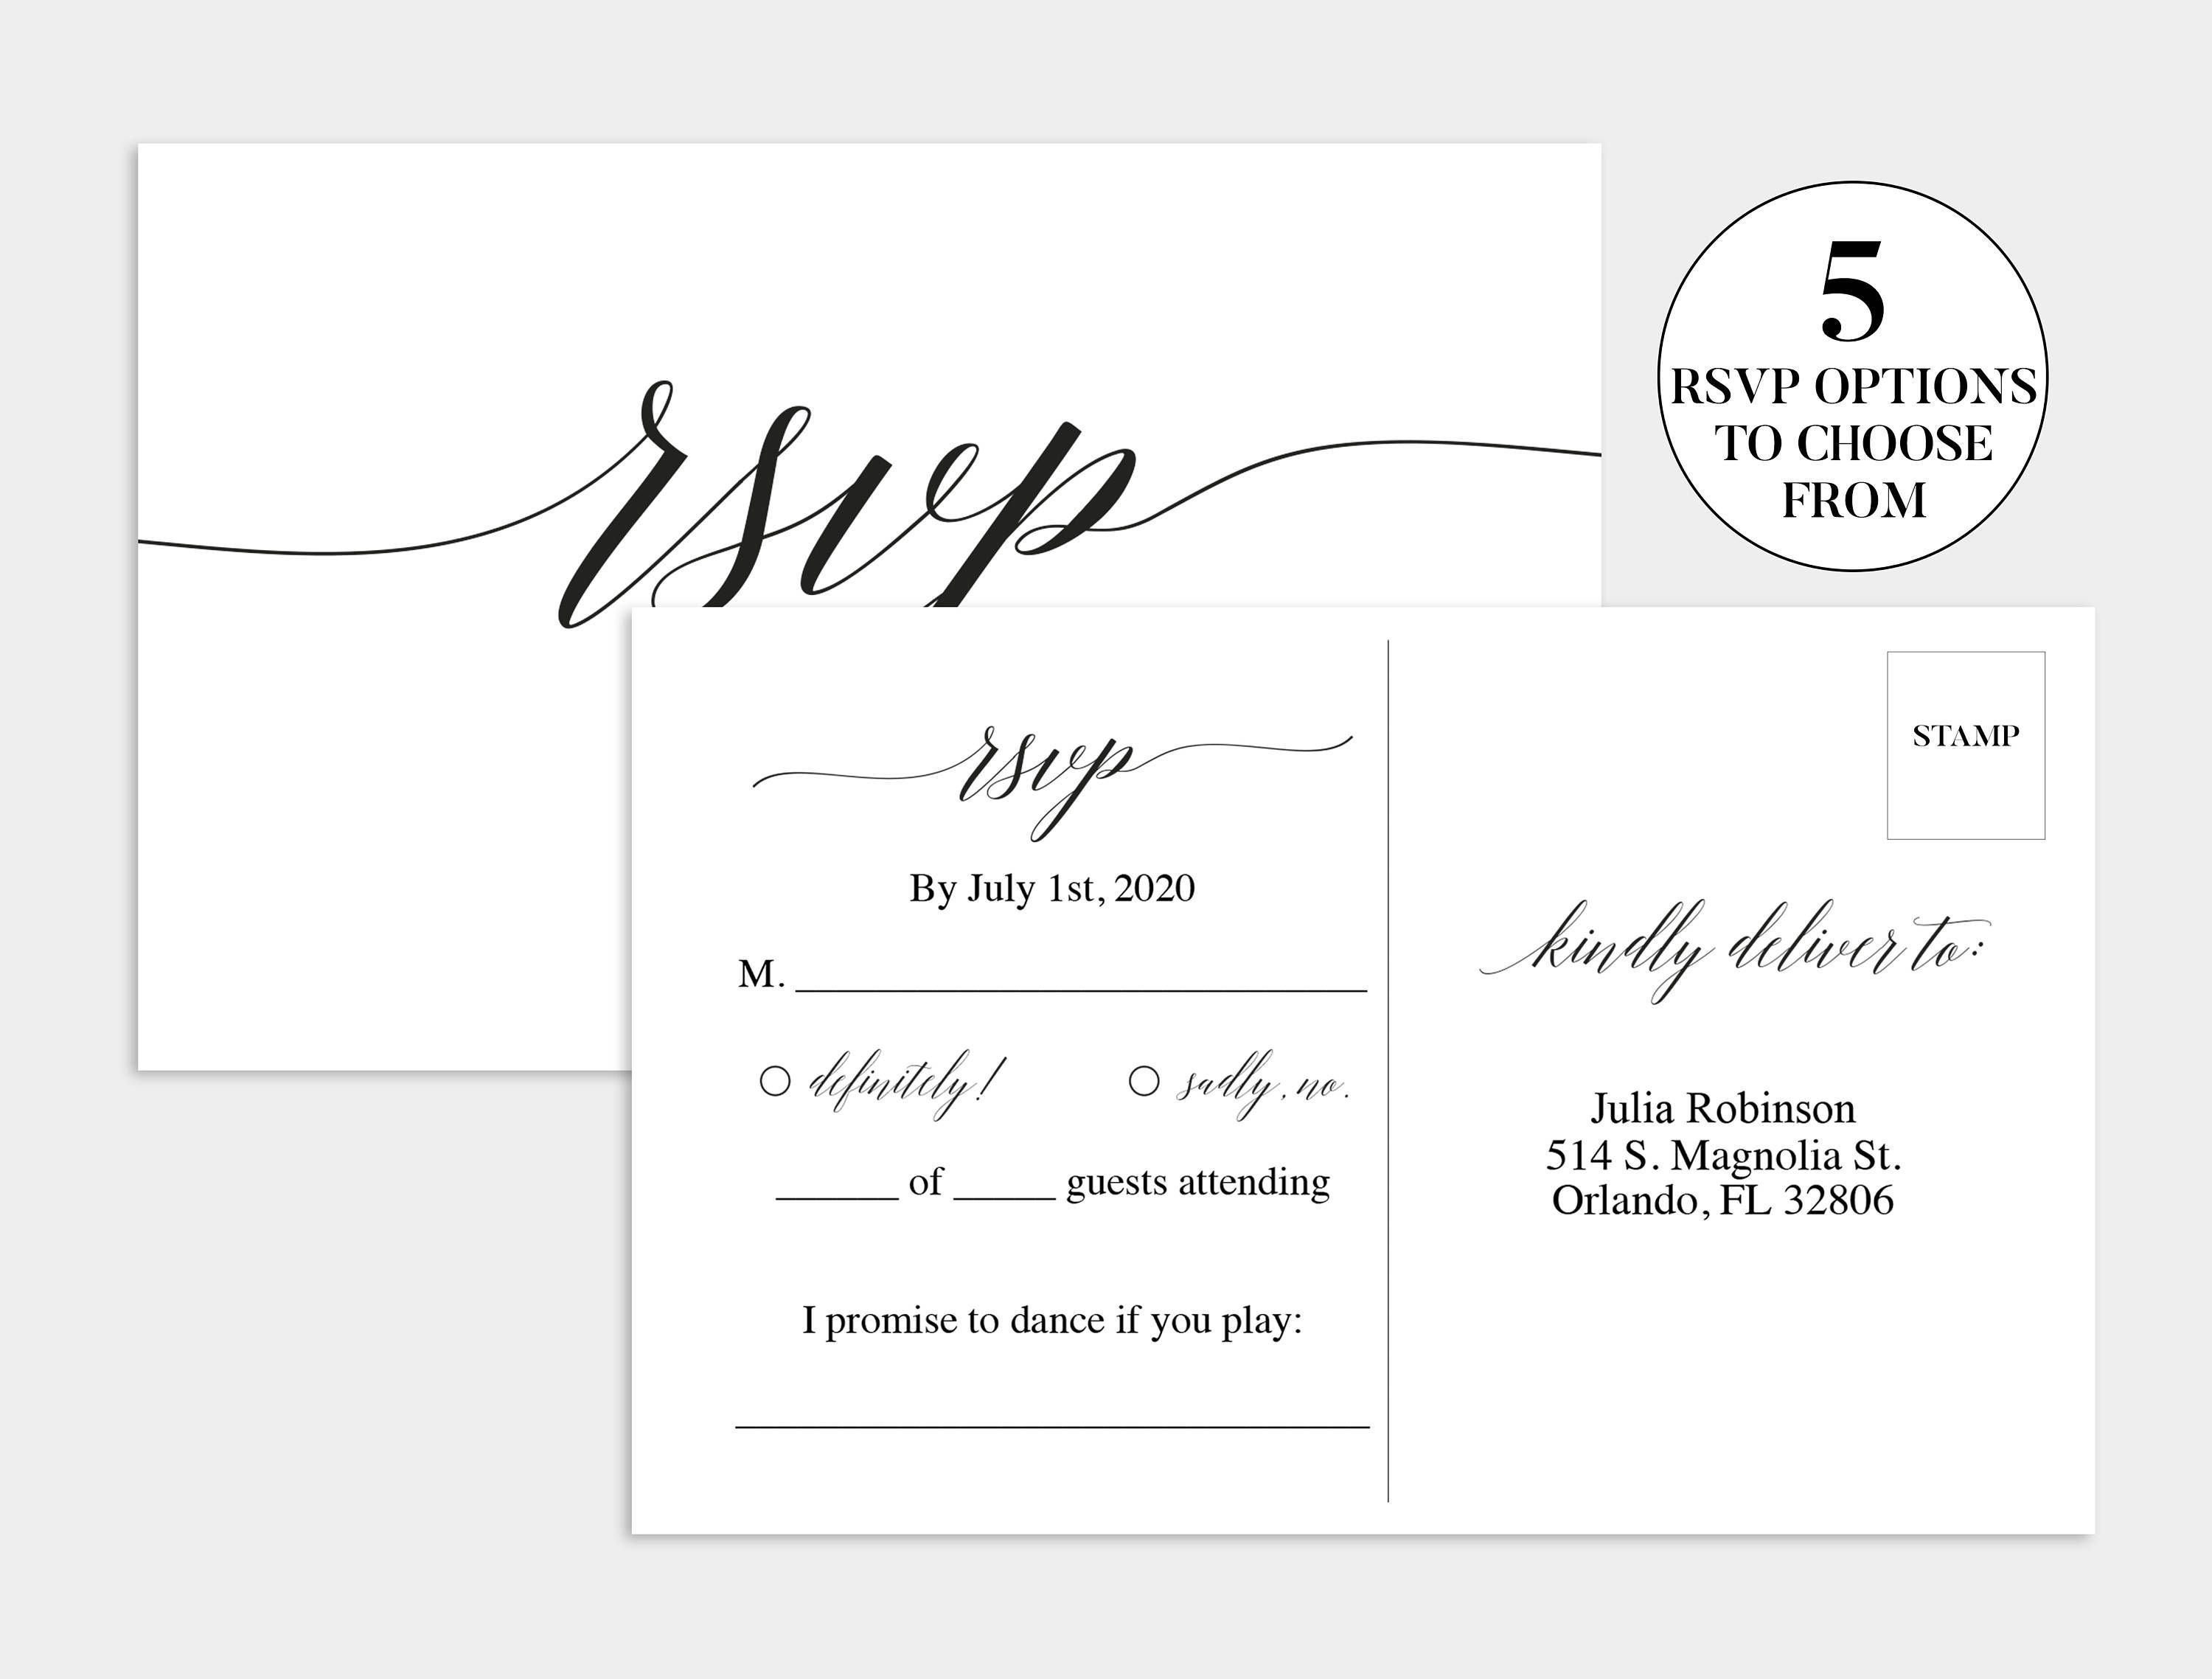 003 Shocking Wedding Rsvp Card Template Highest Clarity  Templates Invitation Menu Free PrintableFull